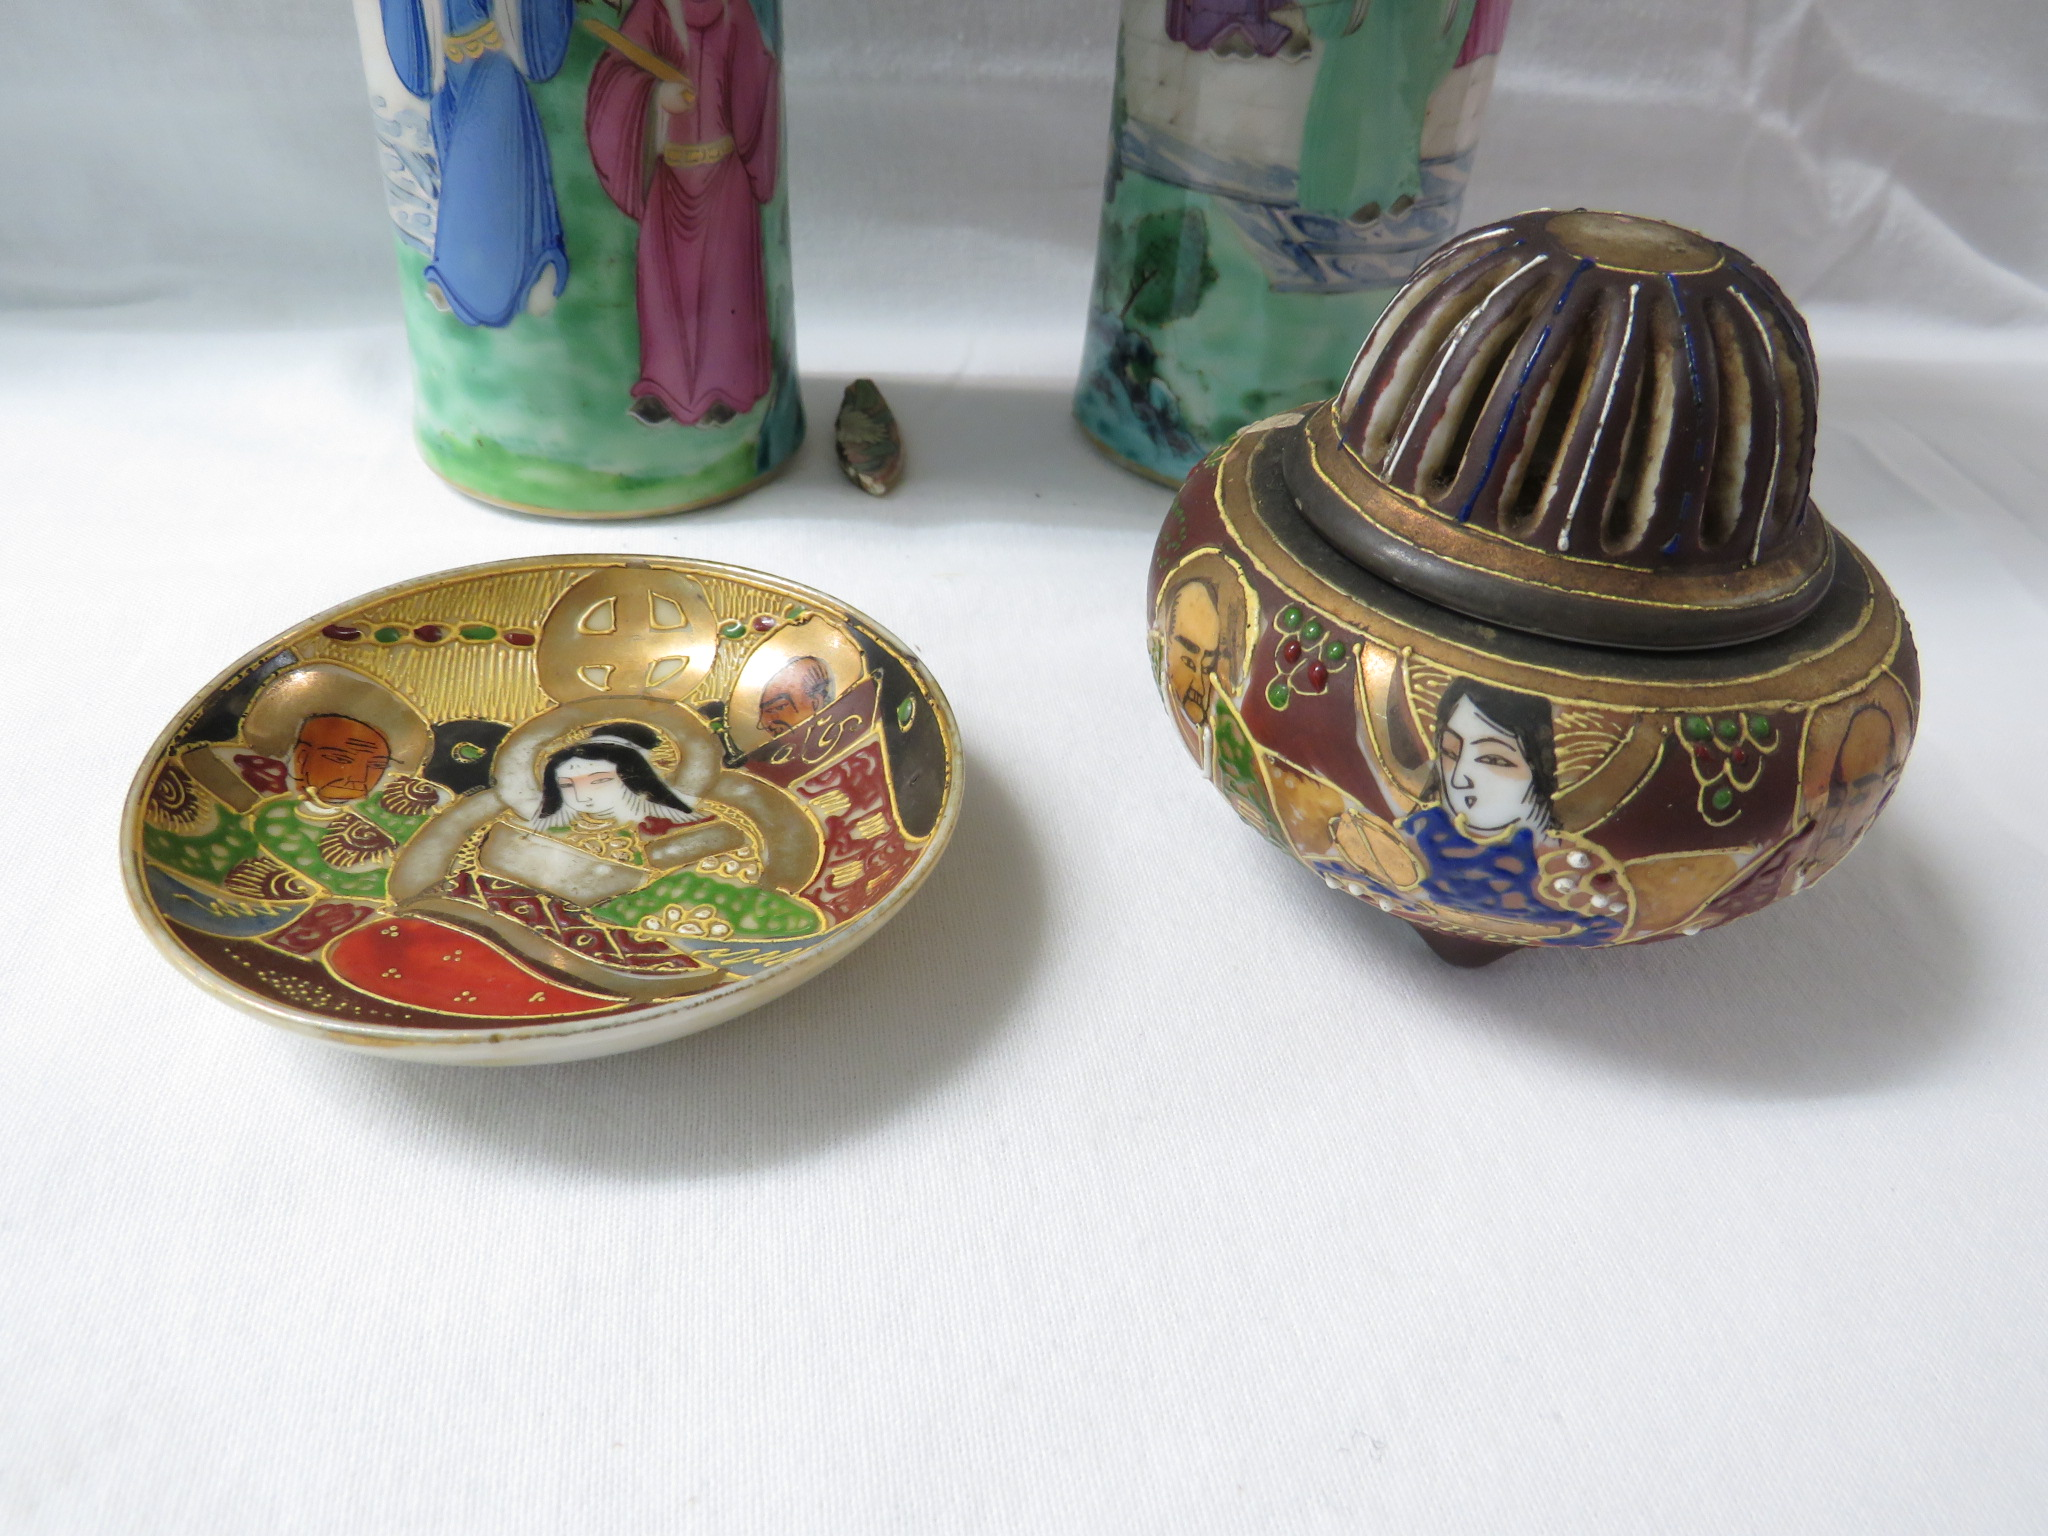 Lot 33 - A pair of Chinese porcelain famille rose vases, cylindrical with flared necks, decorated with